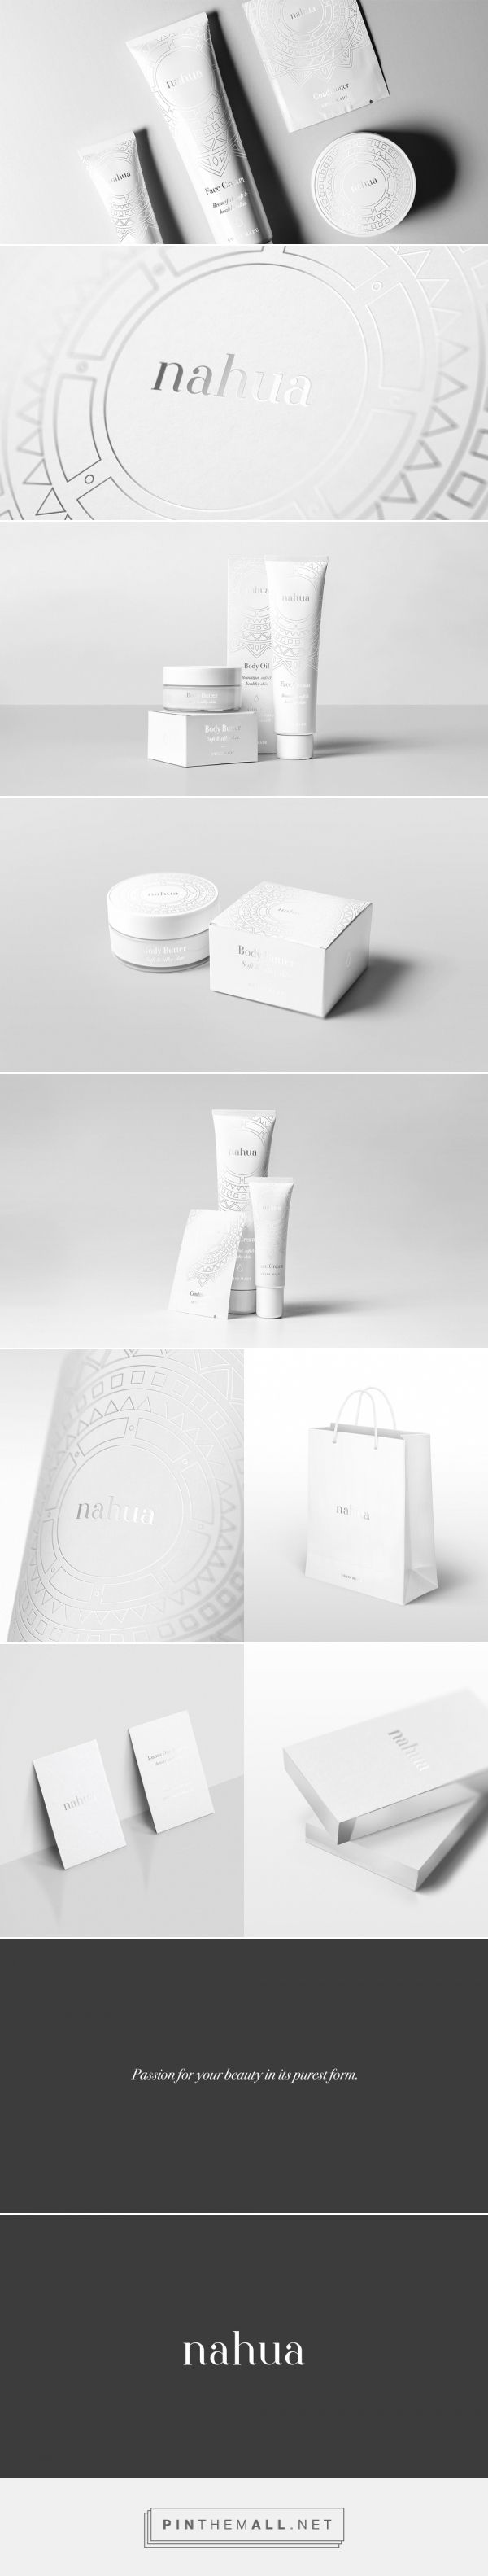 Nahua Cosmetics — The Dieline - Branding & Packaging - created via https://pinthemall.net